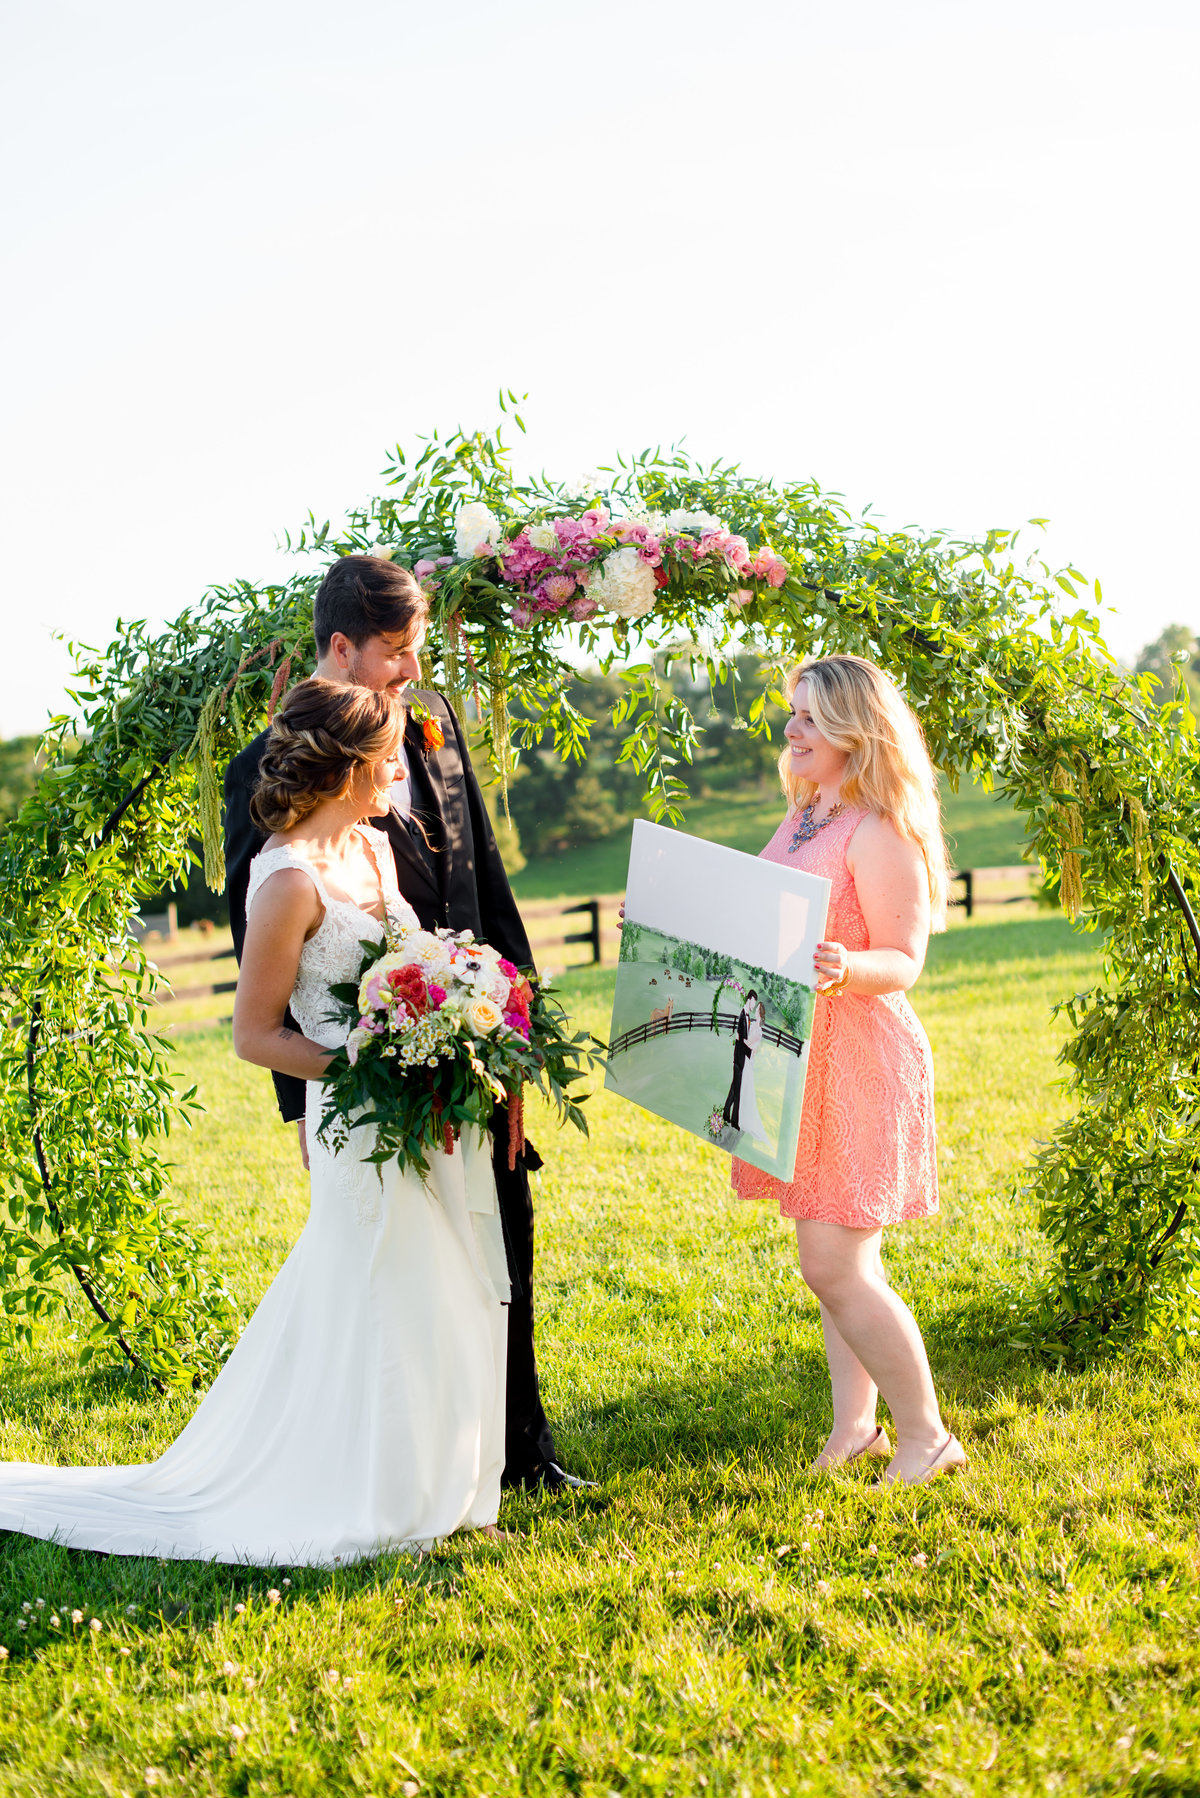 Shadow Creek Leesburg Virginia Live Wedding Painting By Brittany Branson